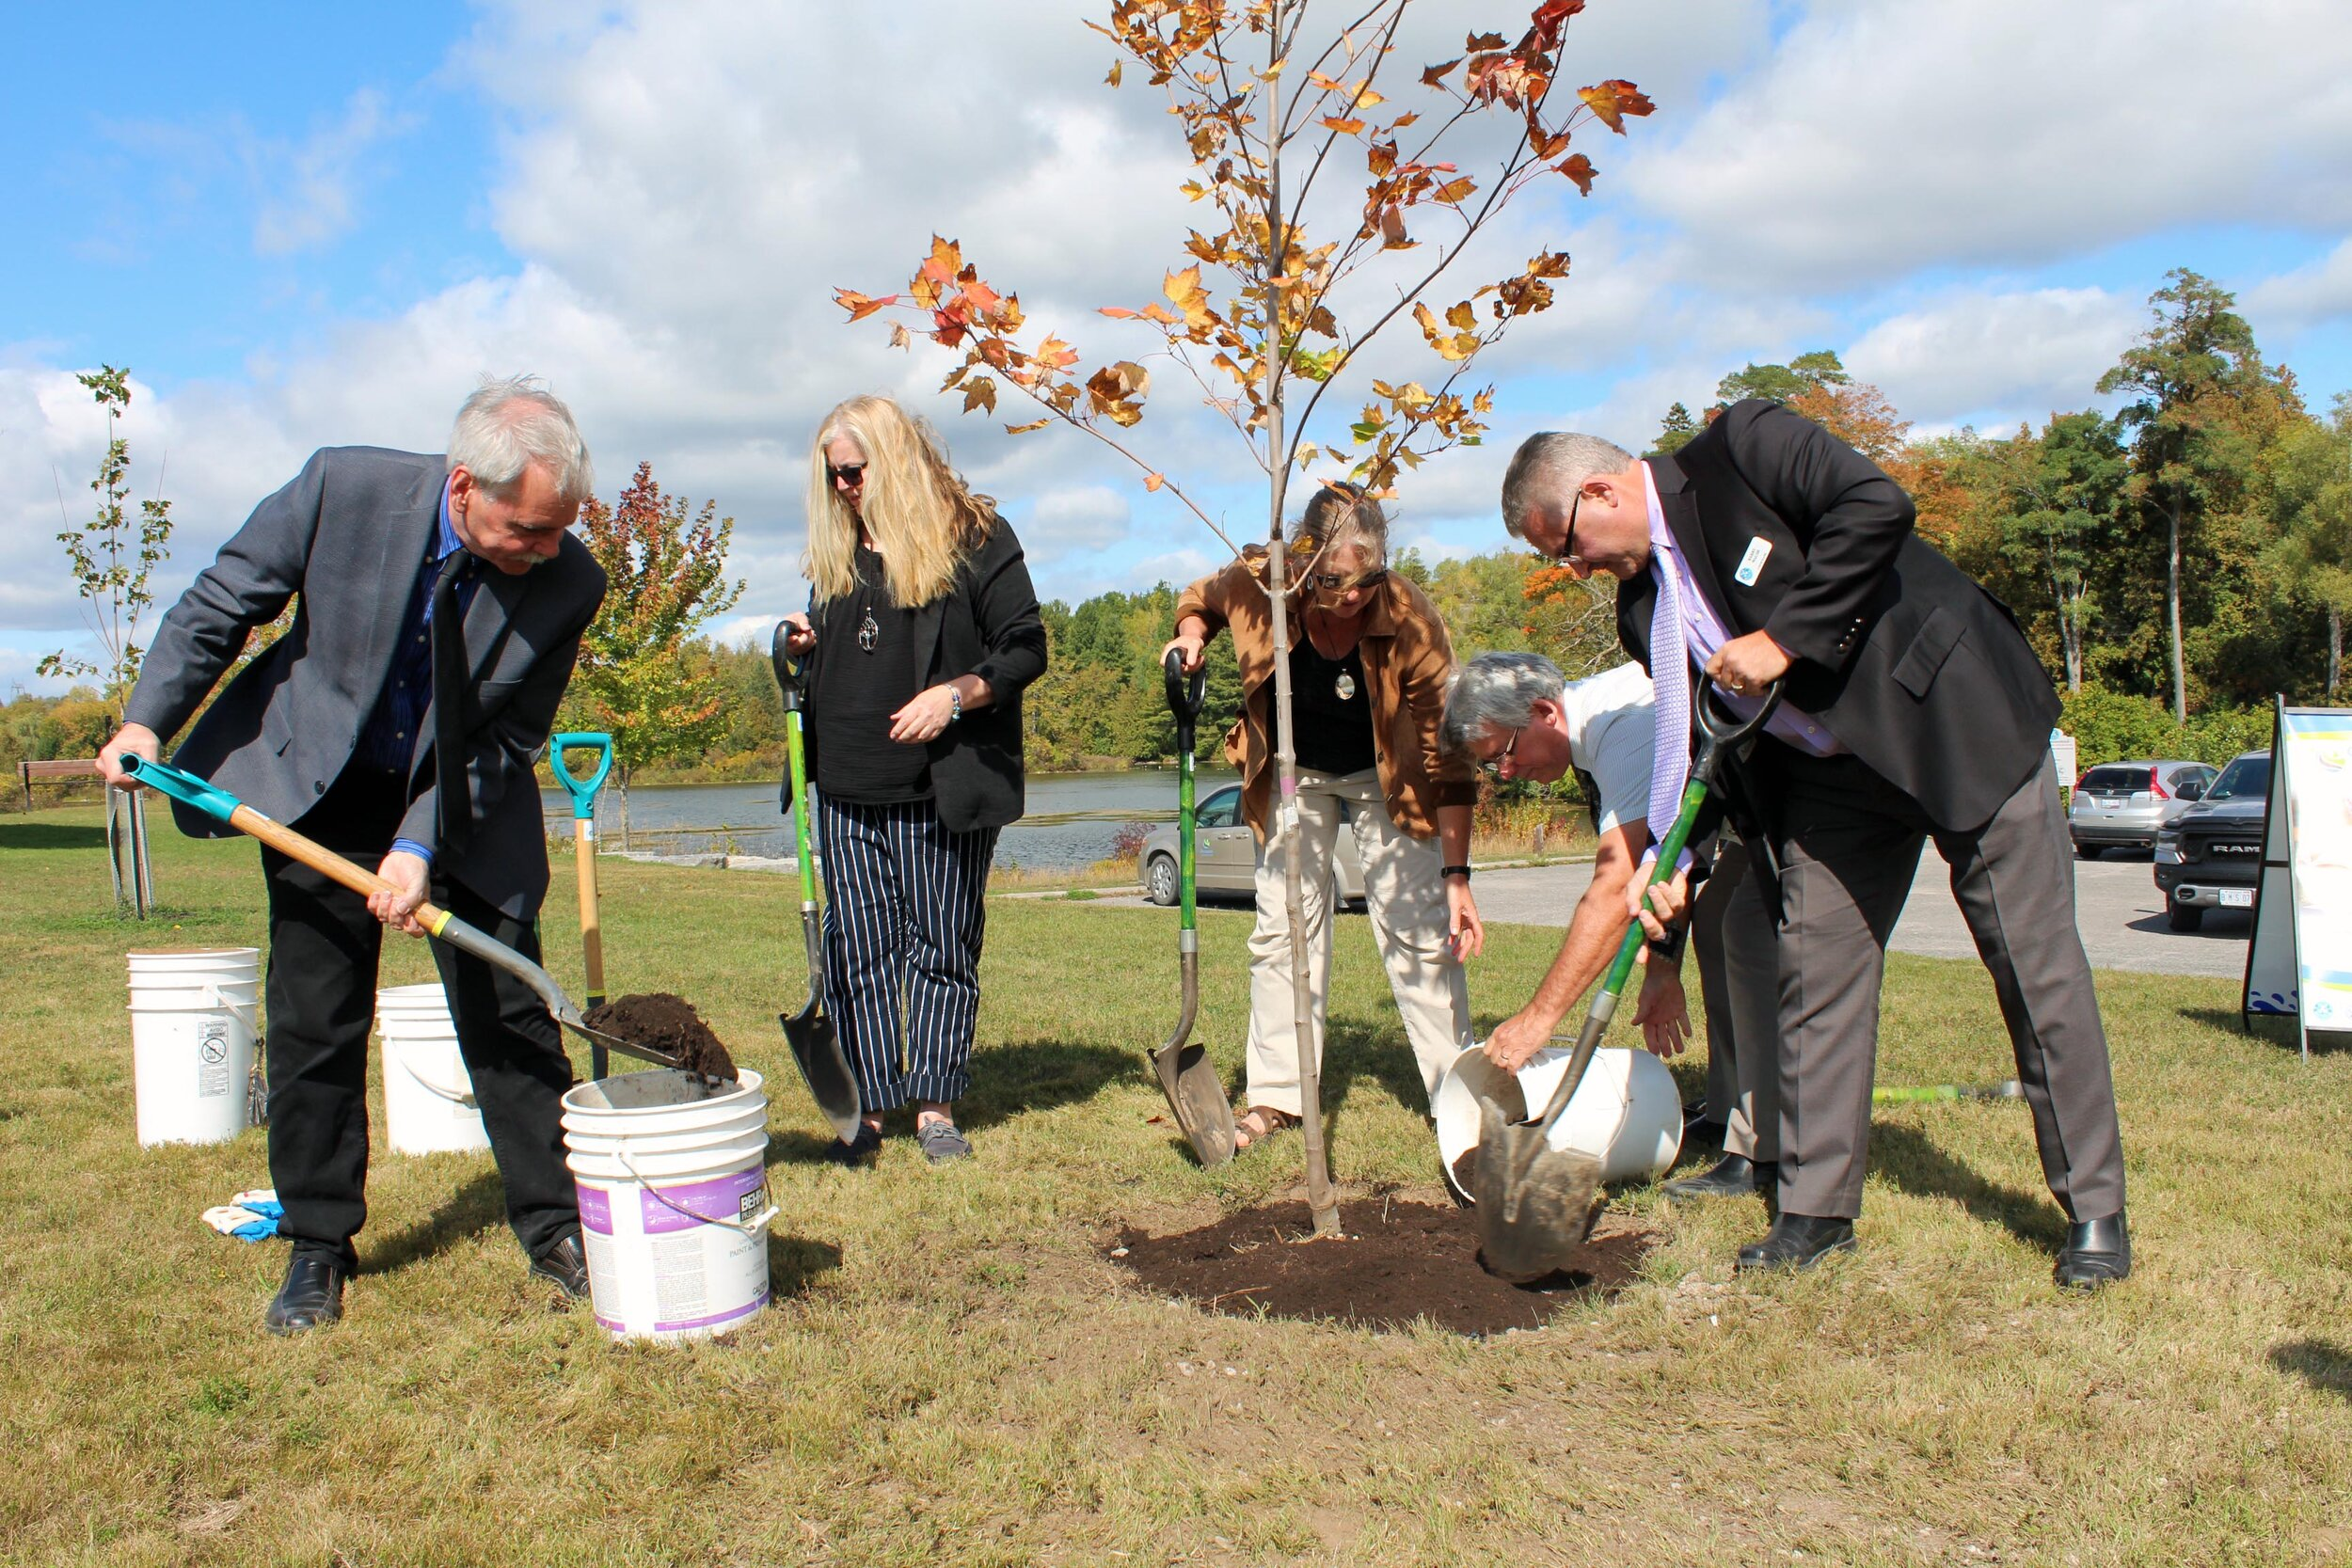 Otonabee Conservation Board of Directors Chair, Andy Mitchell (left) shovels soil around a Northwood Red Maple tree, along with (left to right) Councillor Paula Warr, Deputy Mayor Lori Burtt, Mayor Roger Bonneau, and Councillor Barry Walsh, from Township of Asphodel-Norwood in Asphodel-Norwood. (photo courtesy otonabee conservation)